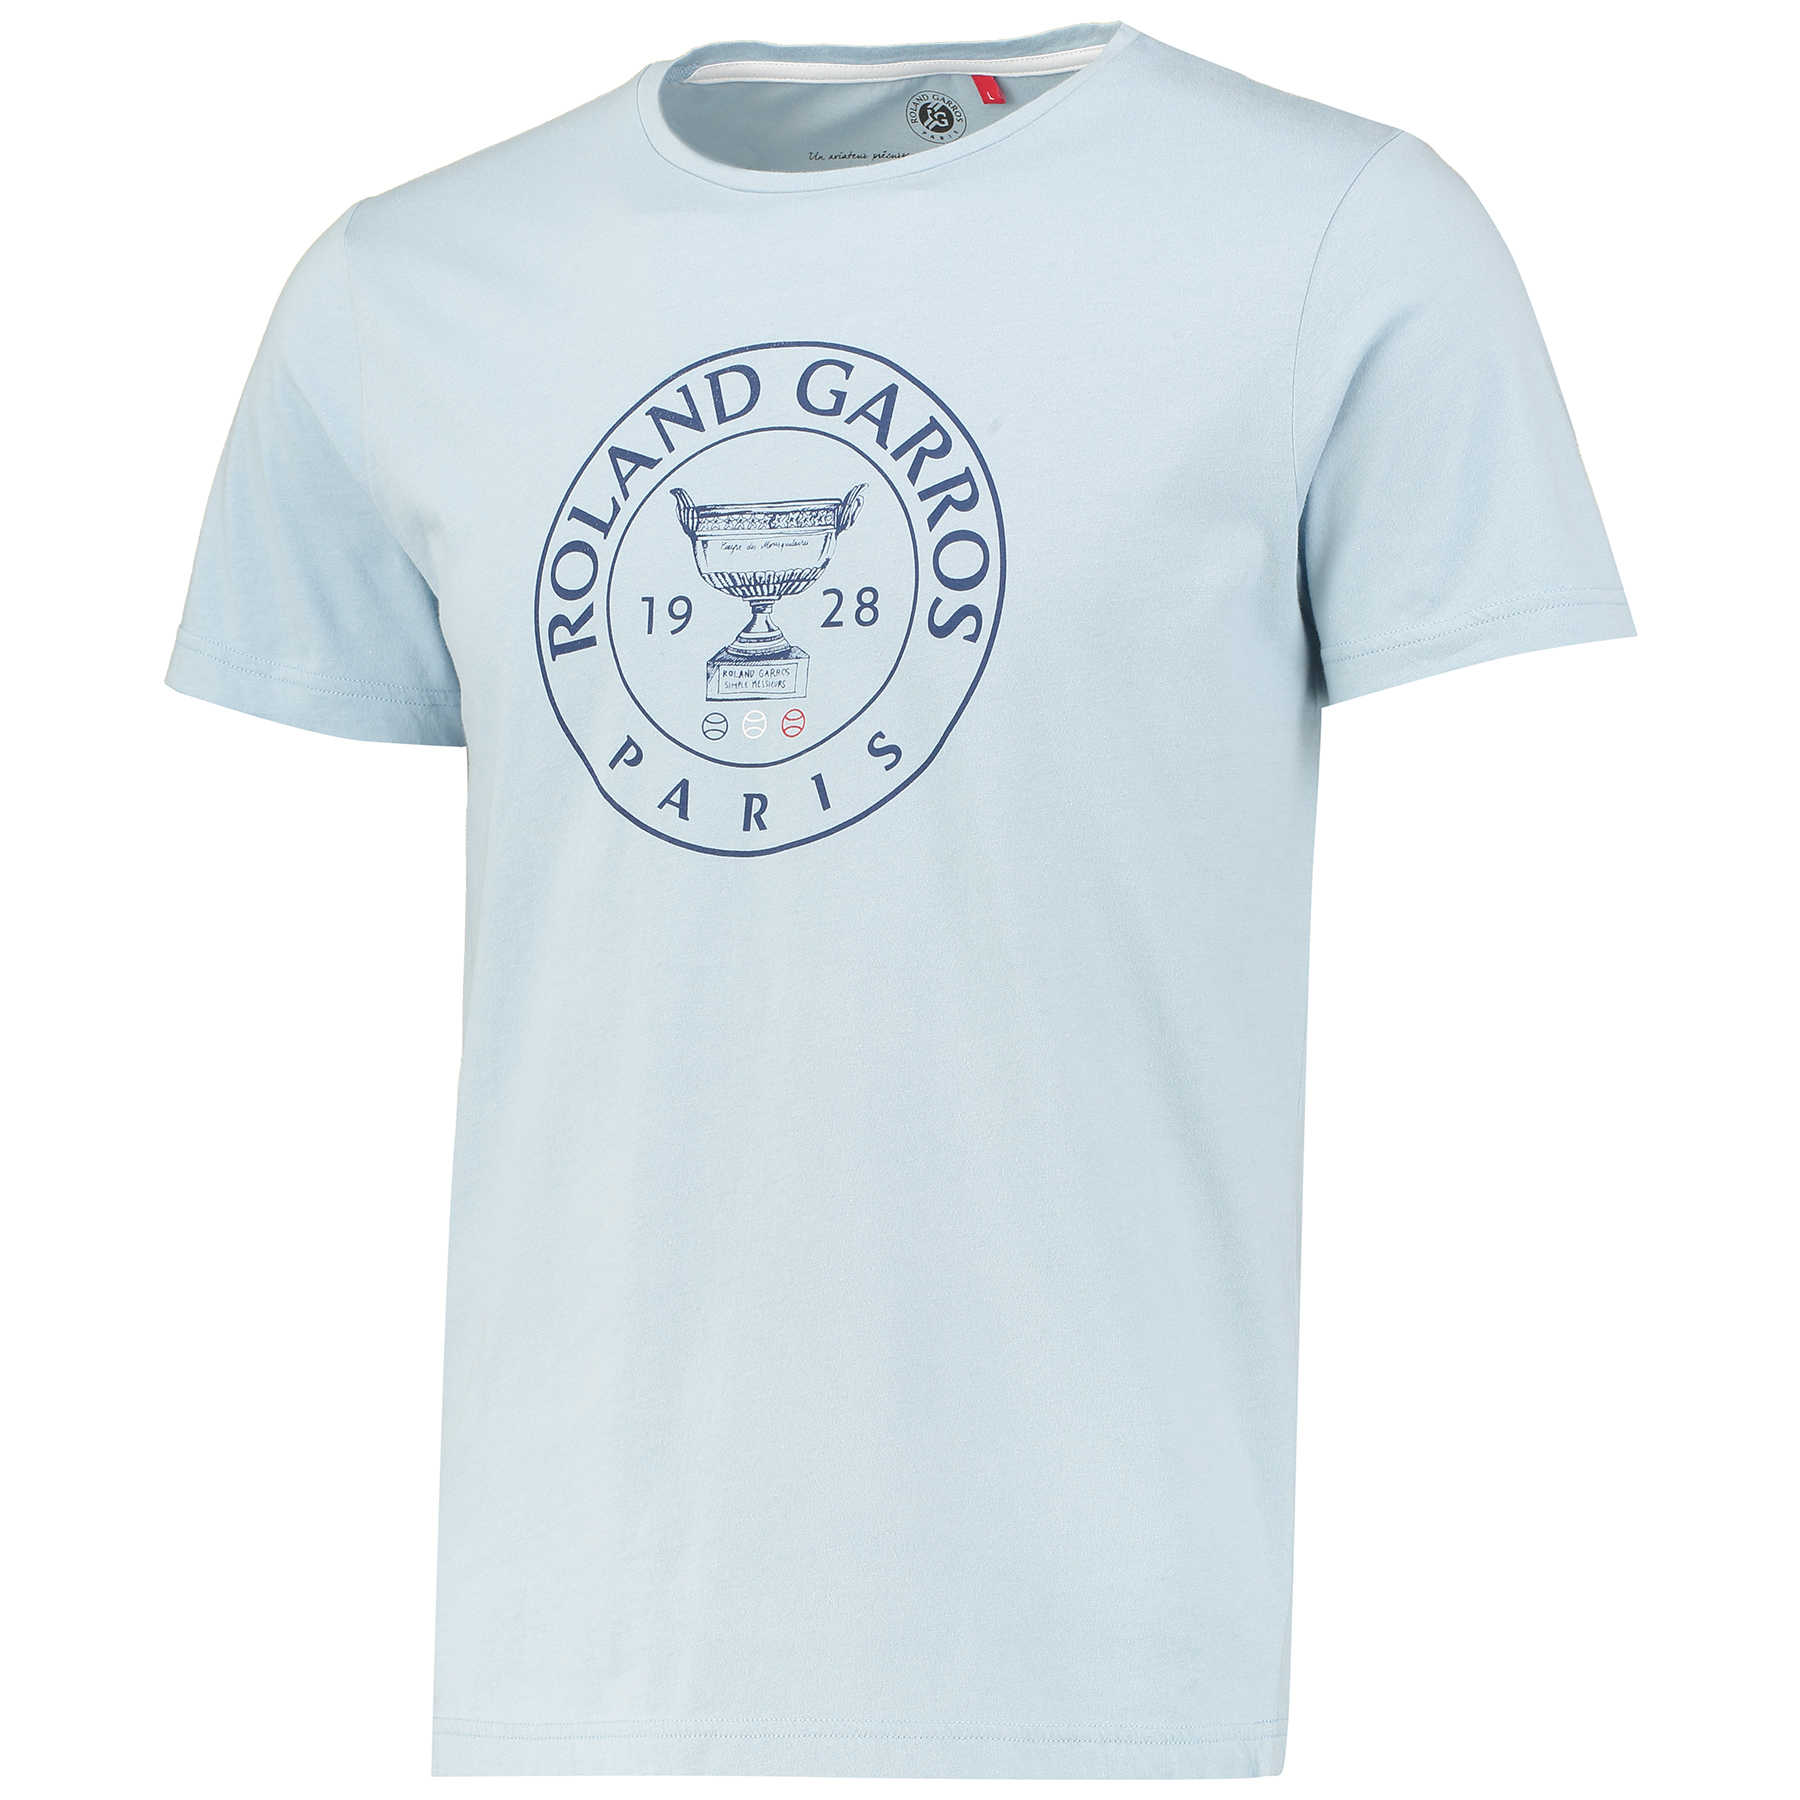 Roland-Garros Sportychic Collection Trophy T-shirt - Mens - Blue Grey